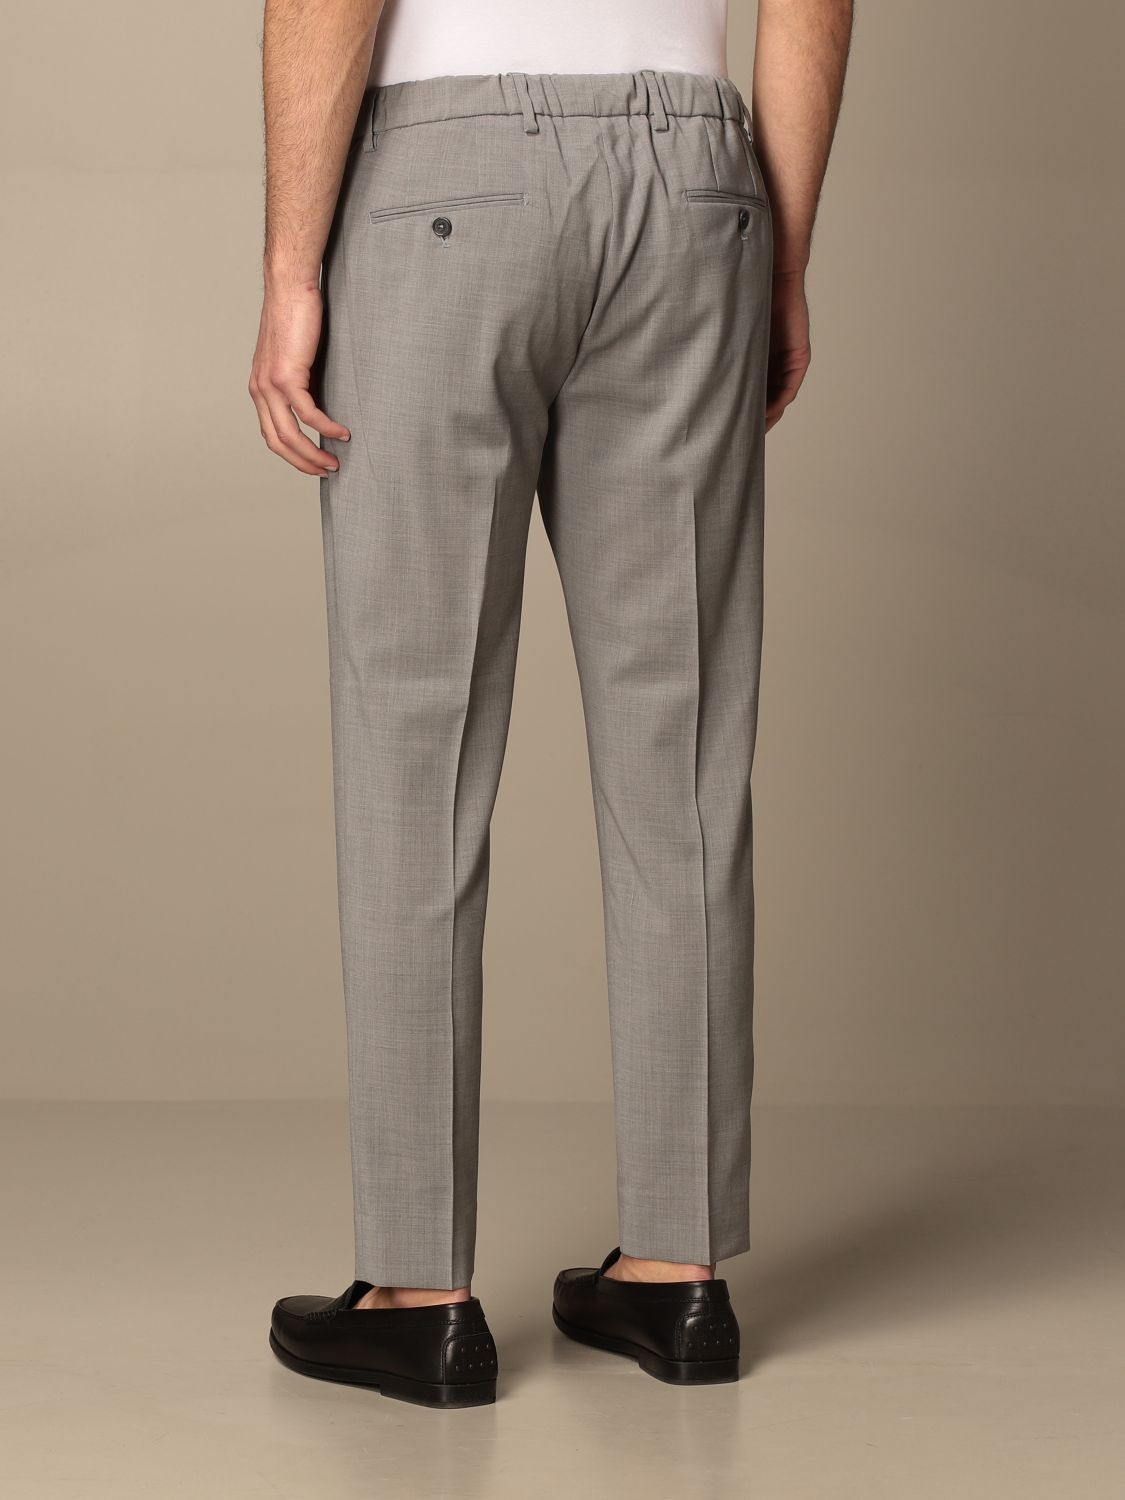 Pants Be Able: Pants men Be Able grey 2